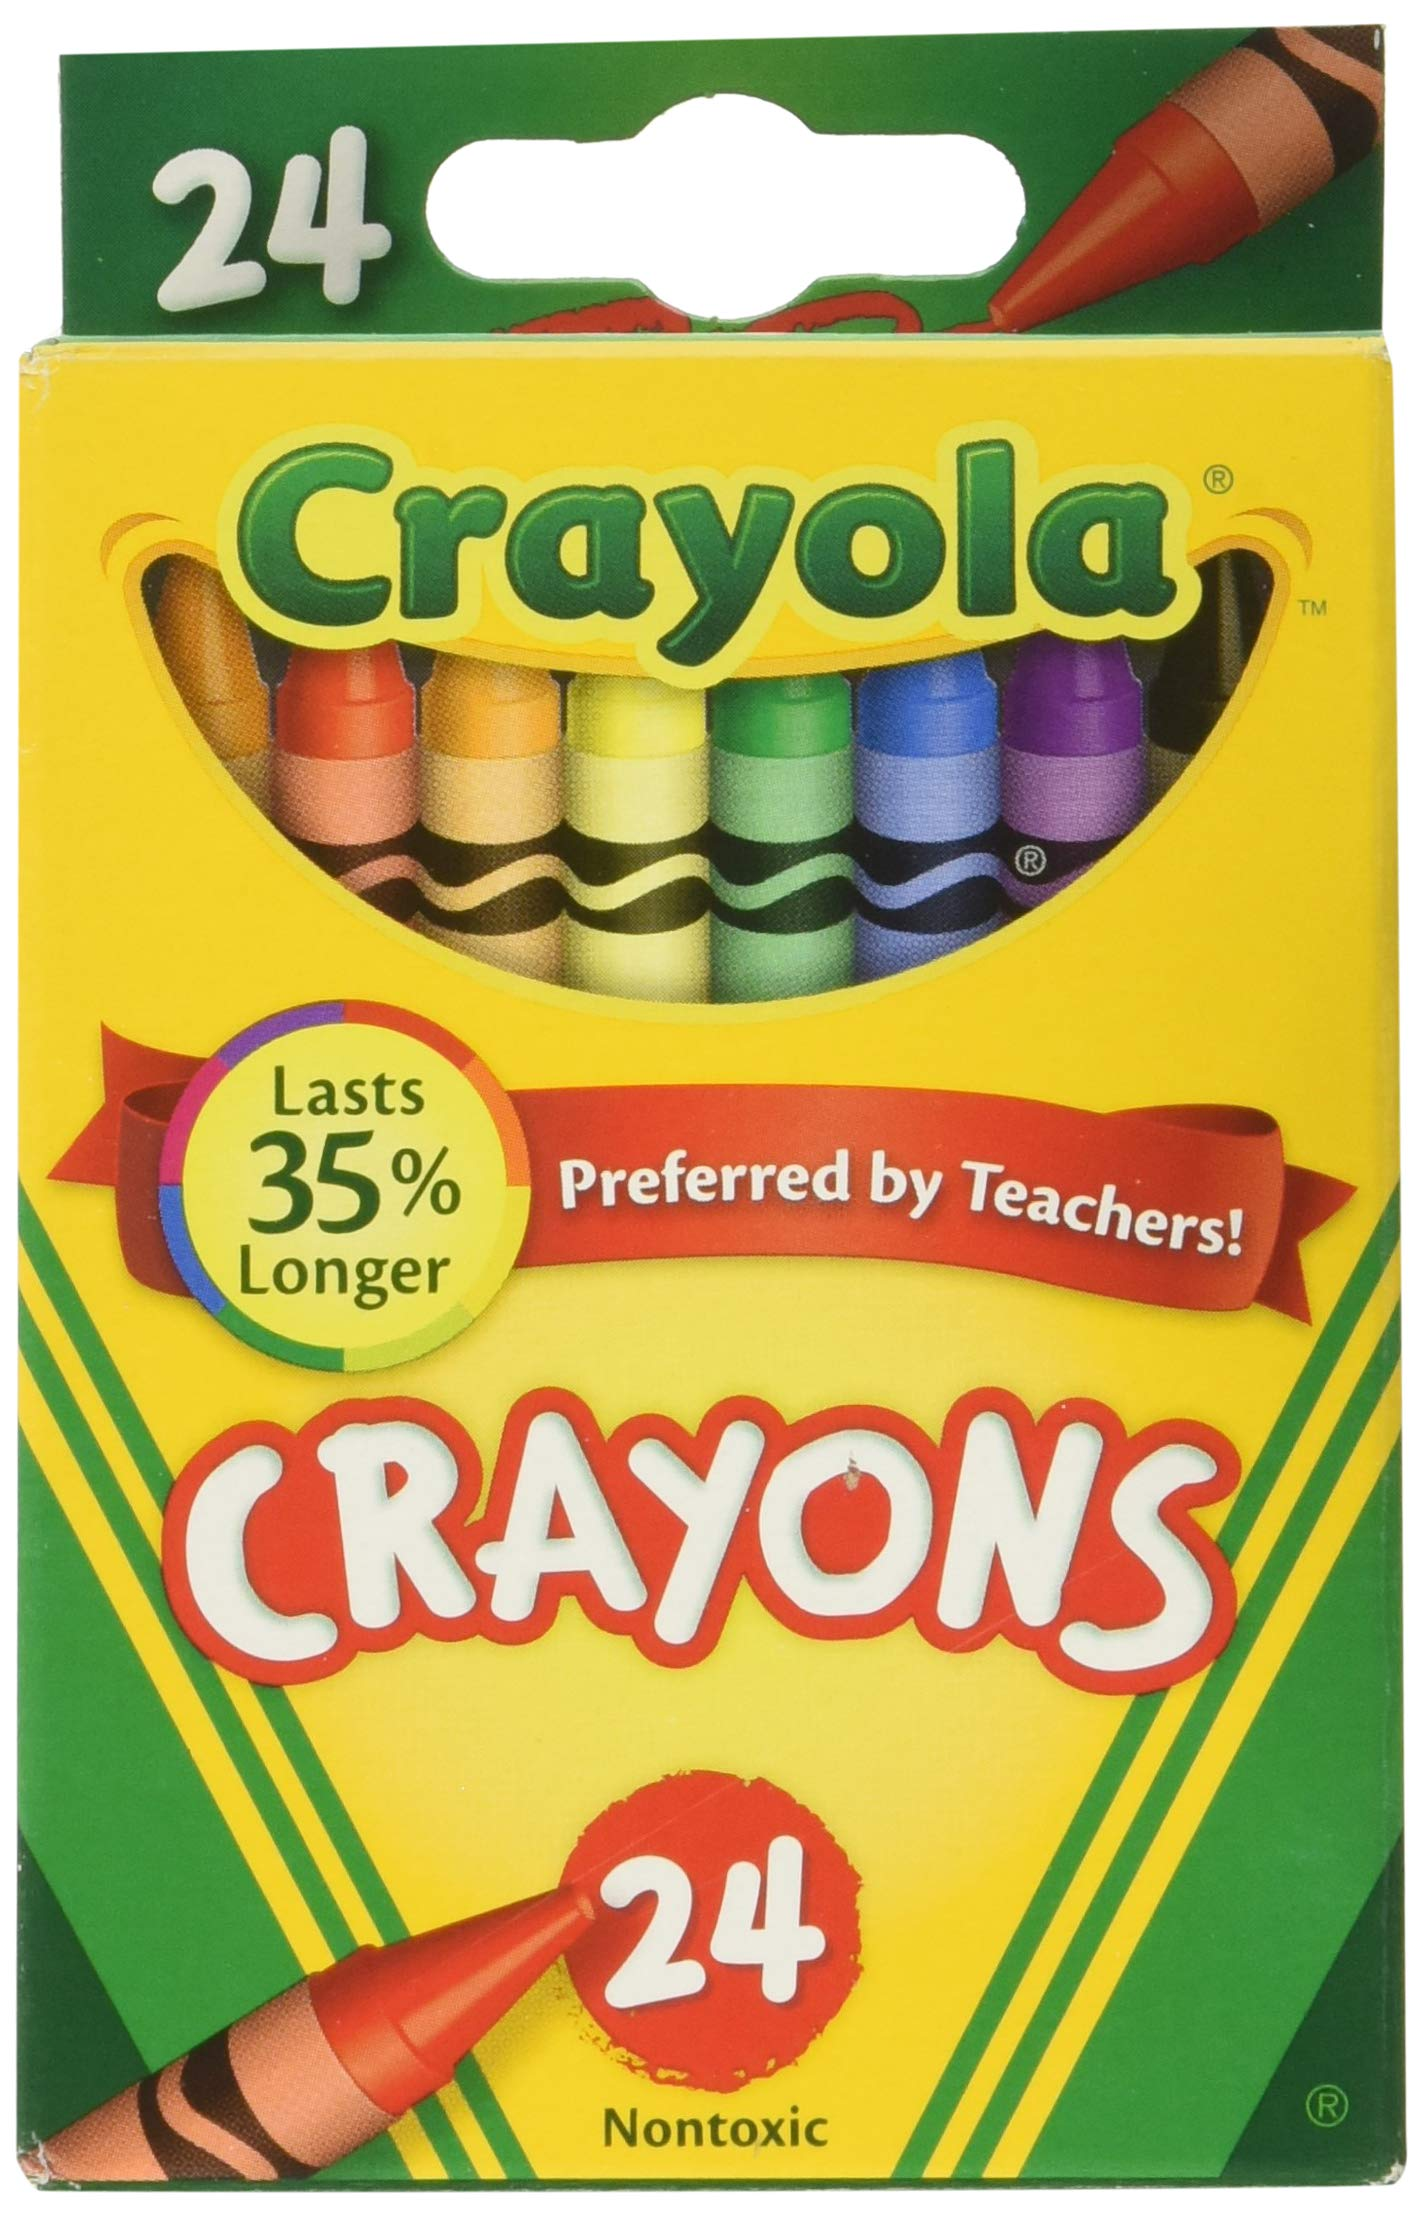 Crayola Crayons 24 in A Box (Pack of 6) 144 Crayons in Total by Crayola